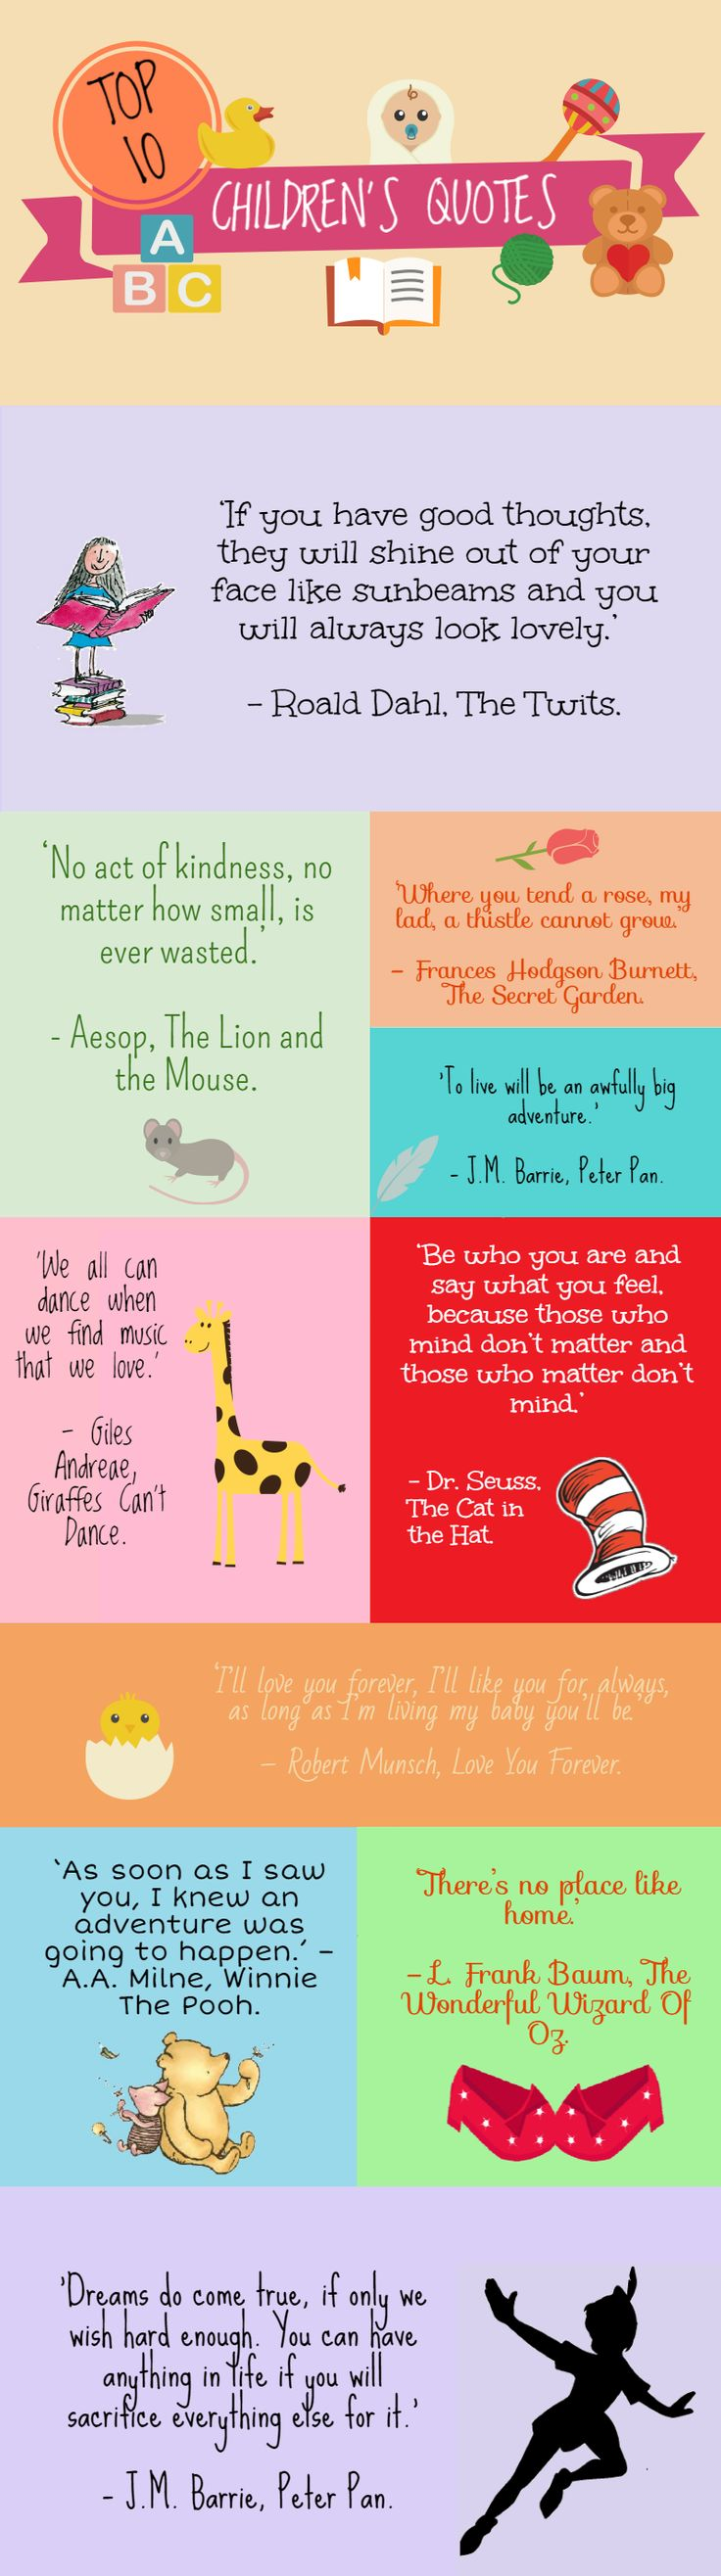 Top 10 Quotes from Classic Children's Books  http://www.iconwallstickers.co.uk/blog/childrens-wallstickers/